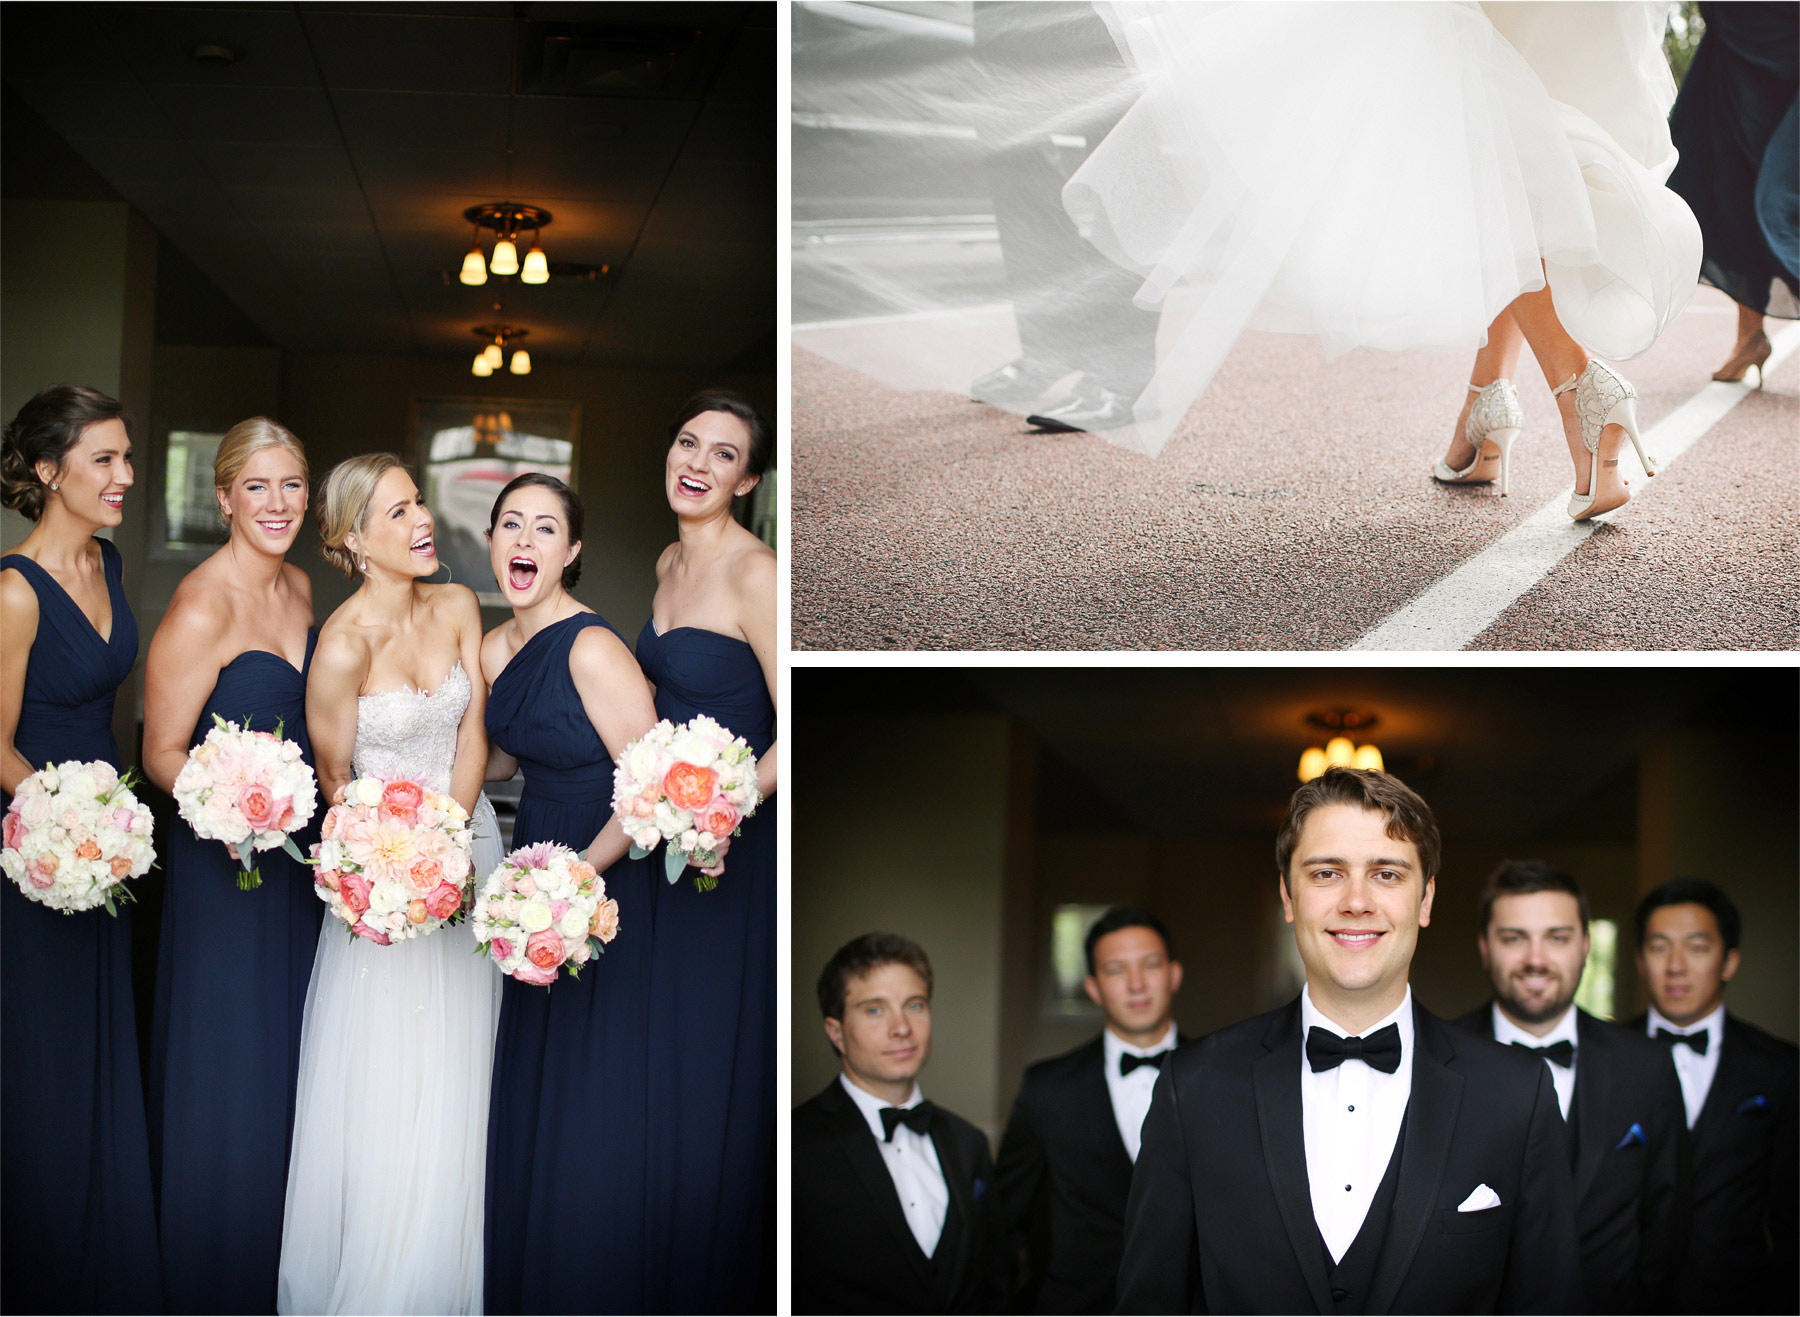 09-Minneapolis-Minnesota-Wedding-Photographer-by-Andrew-Vick-Photography-Summer-Calhoun-Beach-Club-Bride-Groom-Bridal-Party-Bridesmaids-Flowers-Laughter-Groomsmen-High-Heals-Shoes-Vintage-Michelle-and-Kevin.jpg